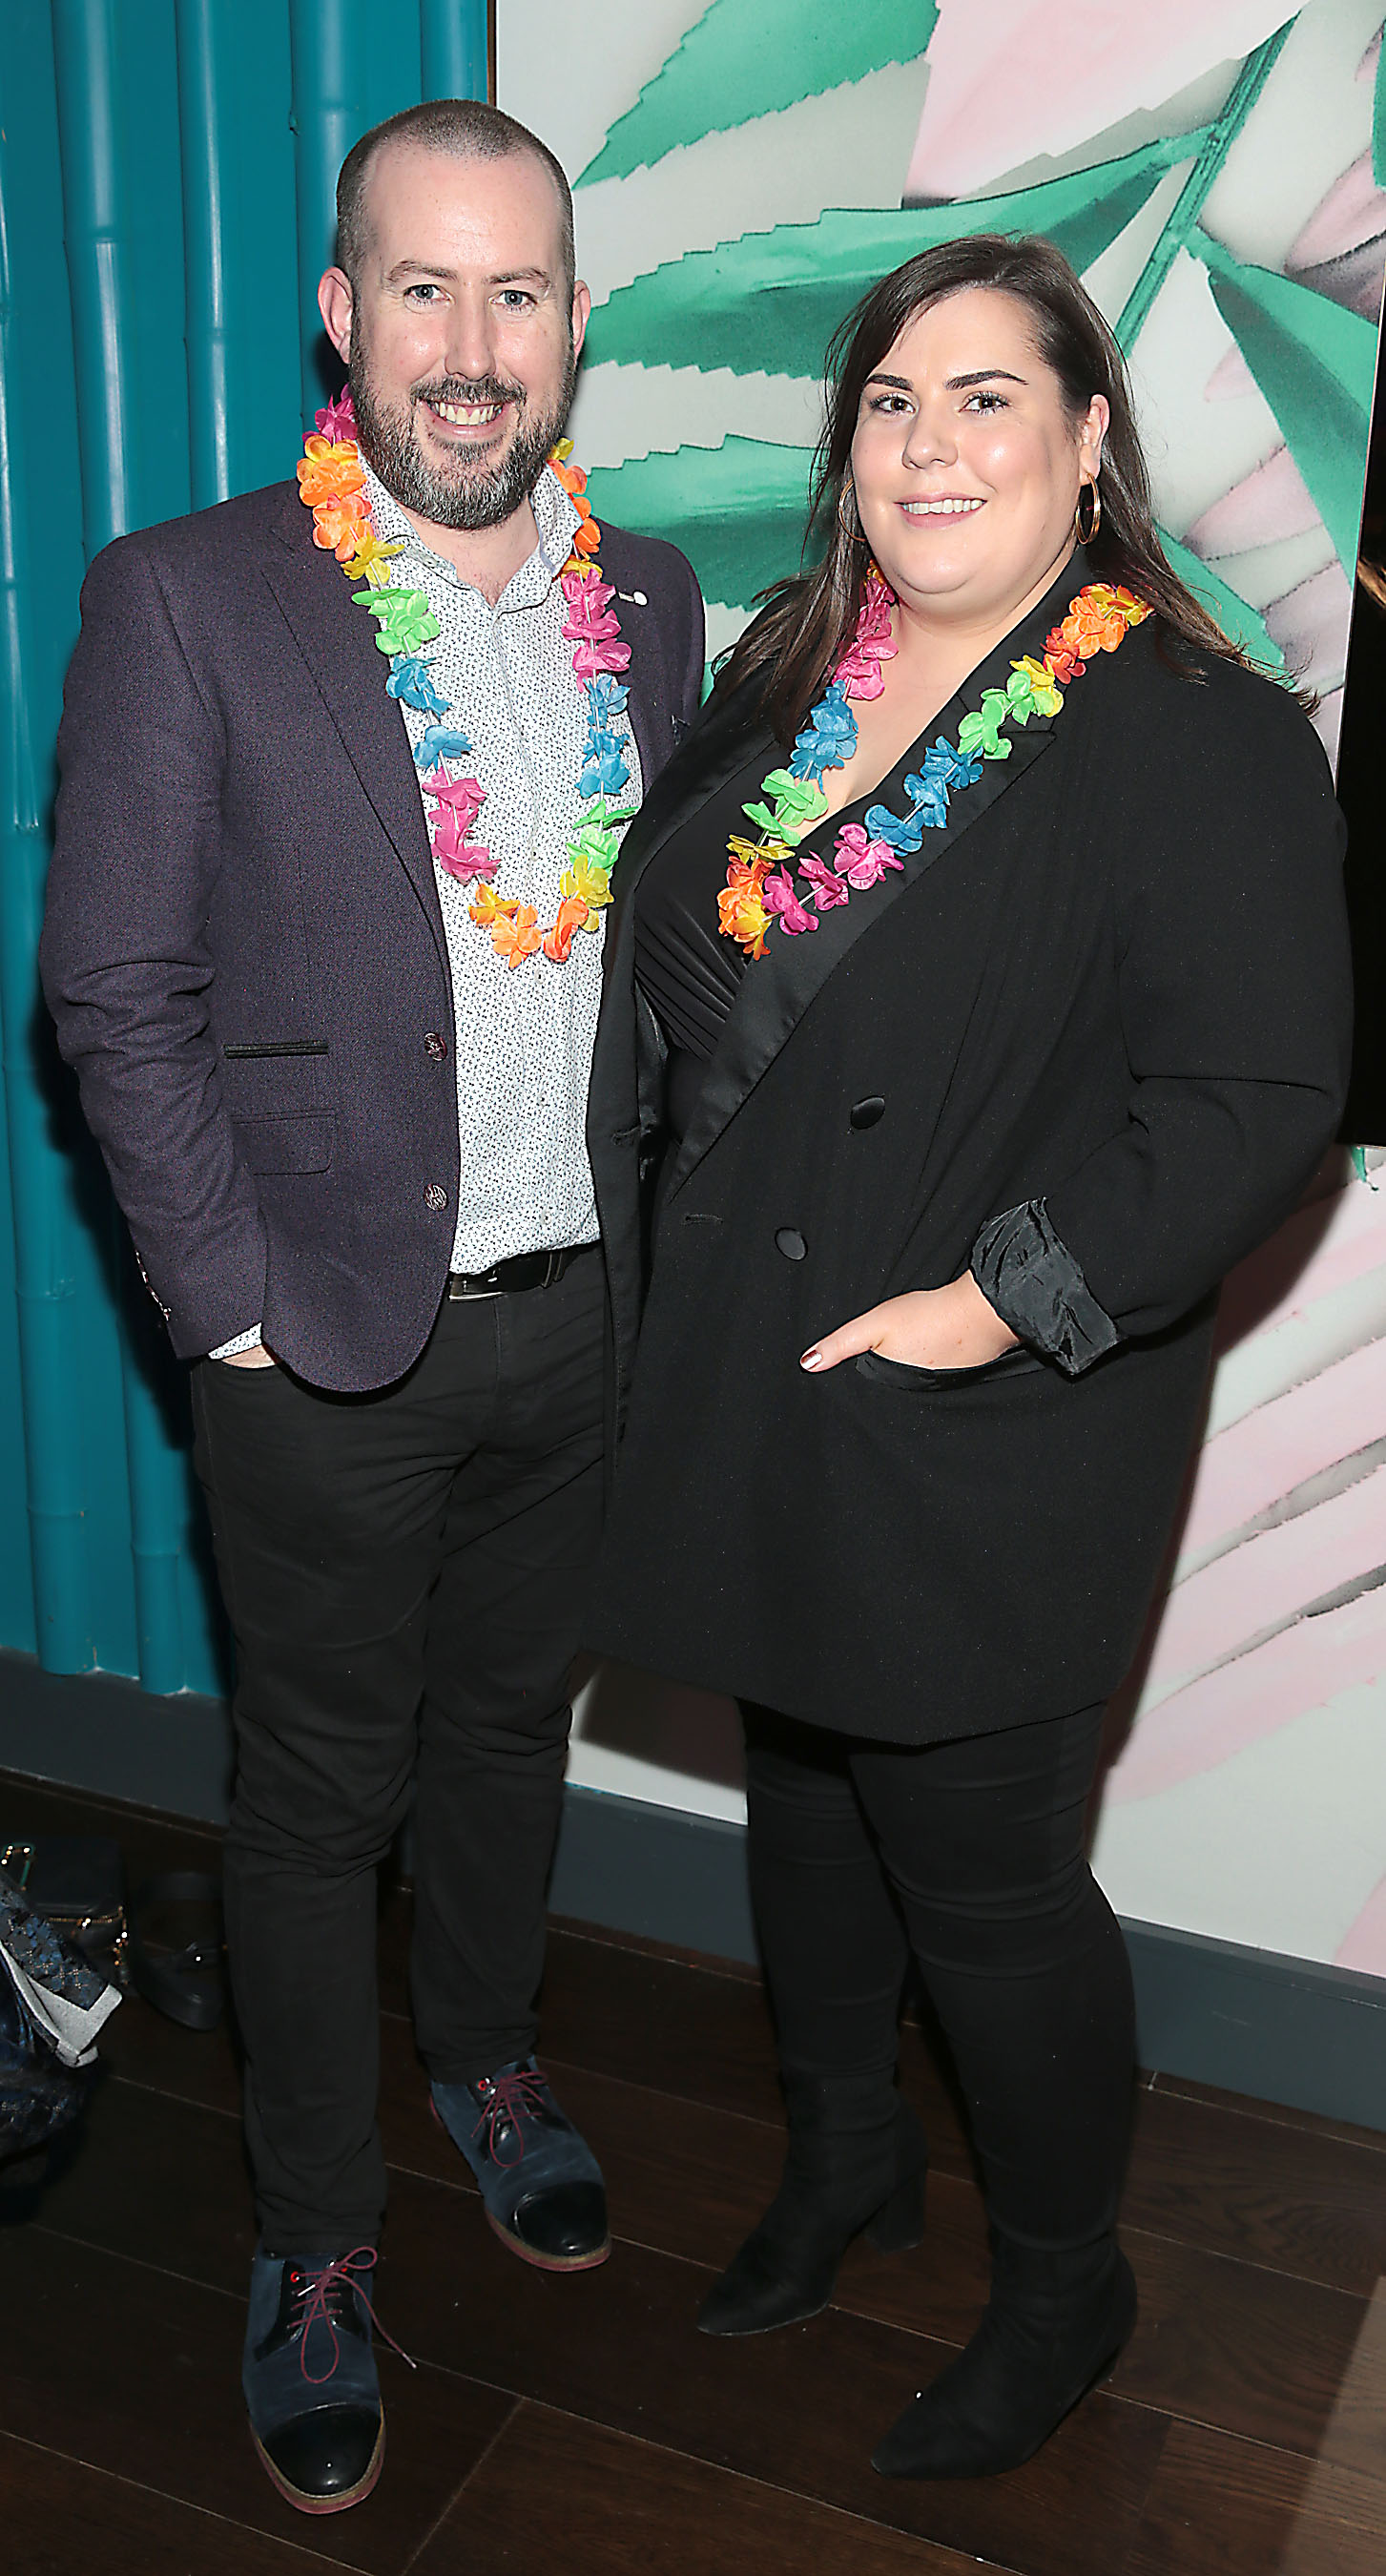 Kieran O Malley and Enda Donnelly pictured at the opening of Ohana in Harcourt Street, Dublin. Pic: Brian McEvoy